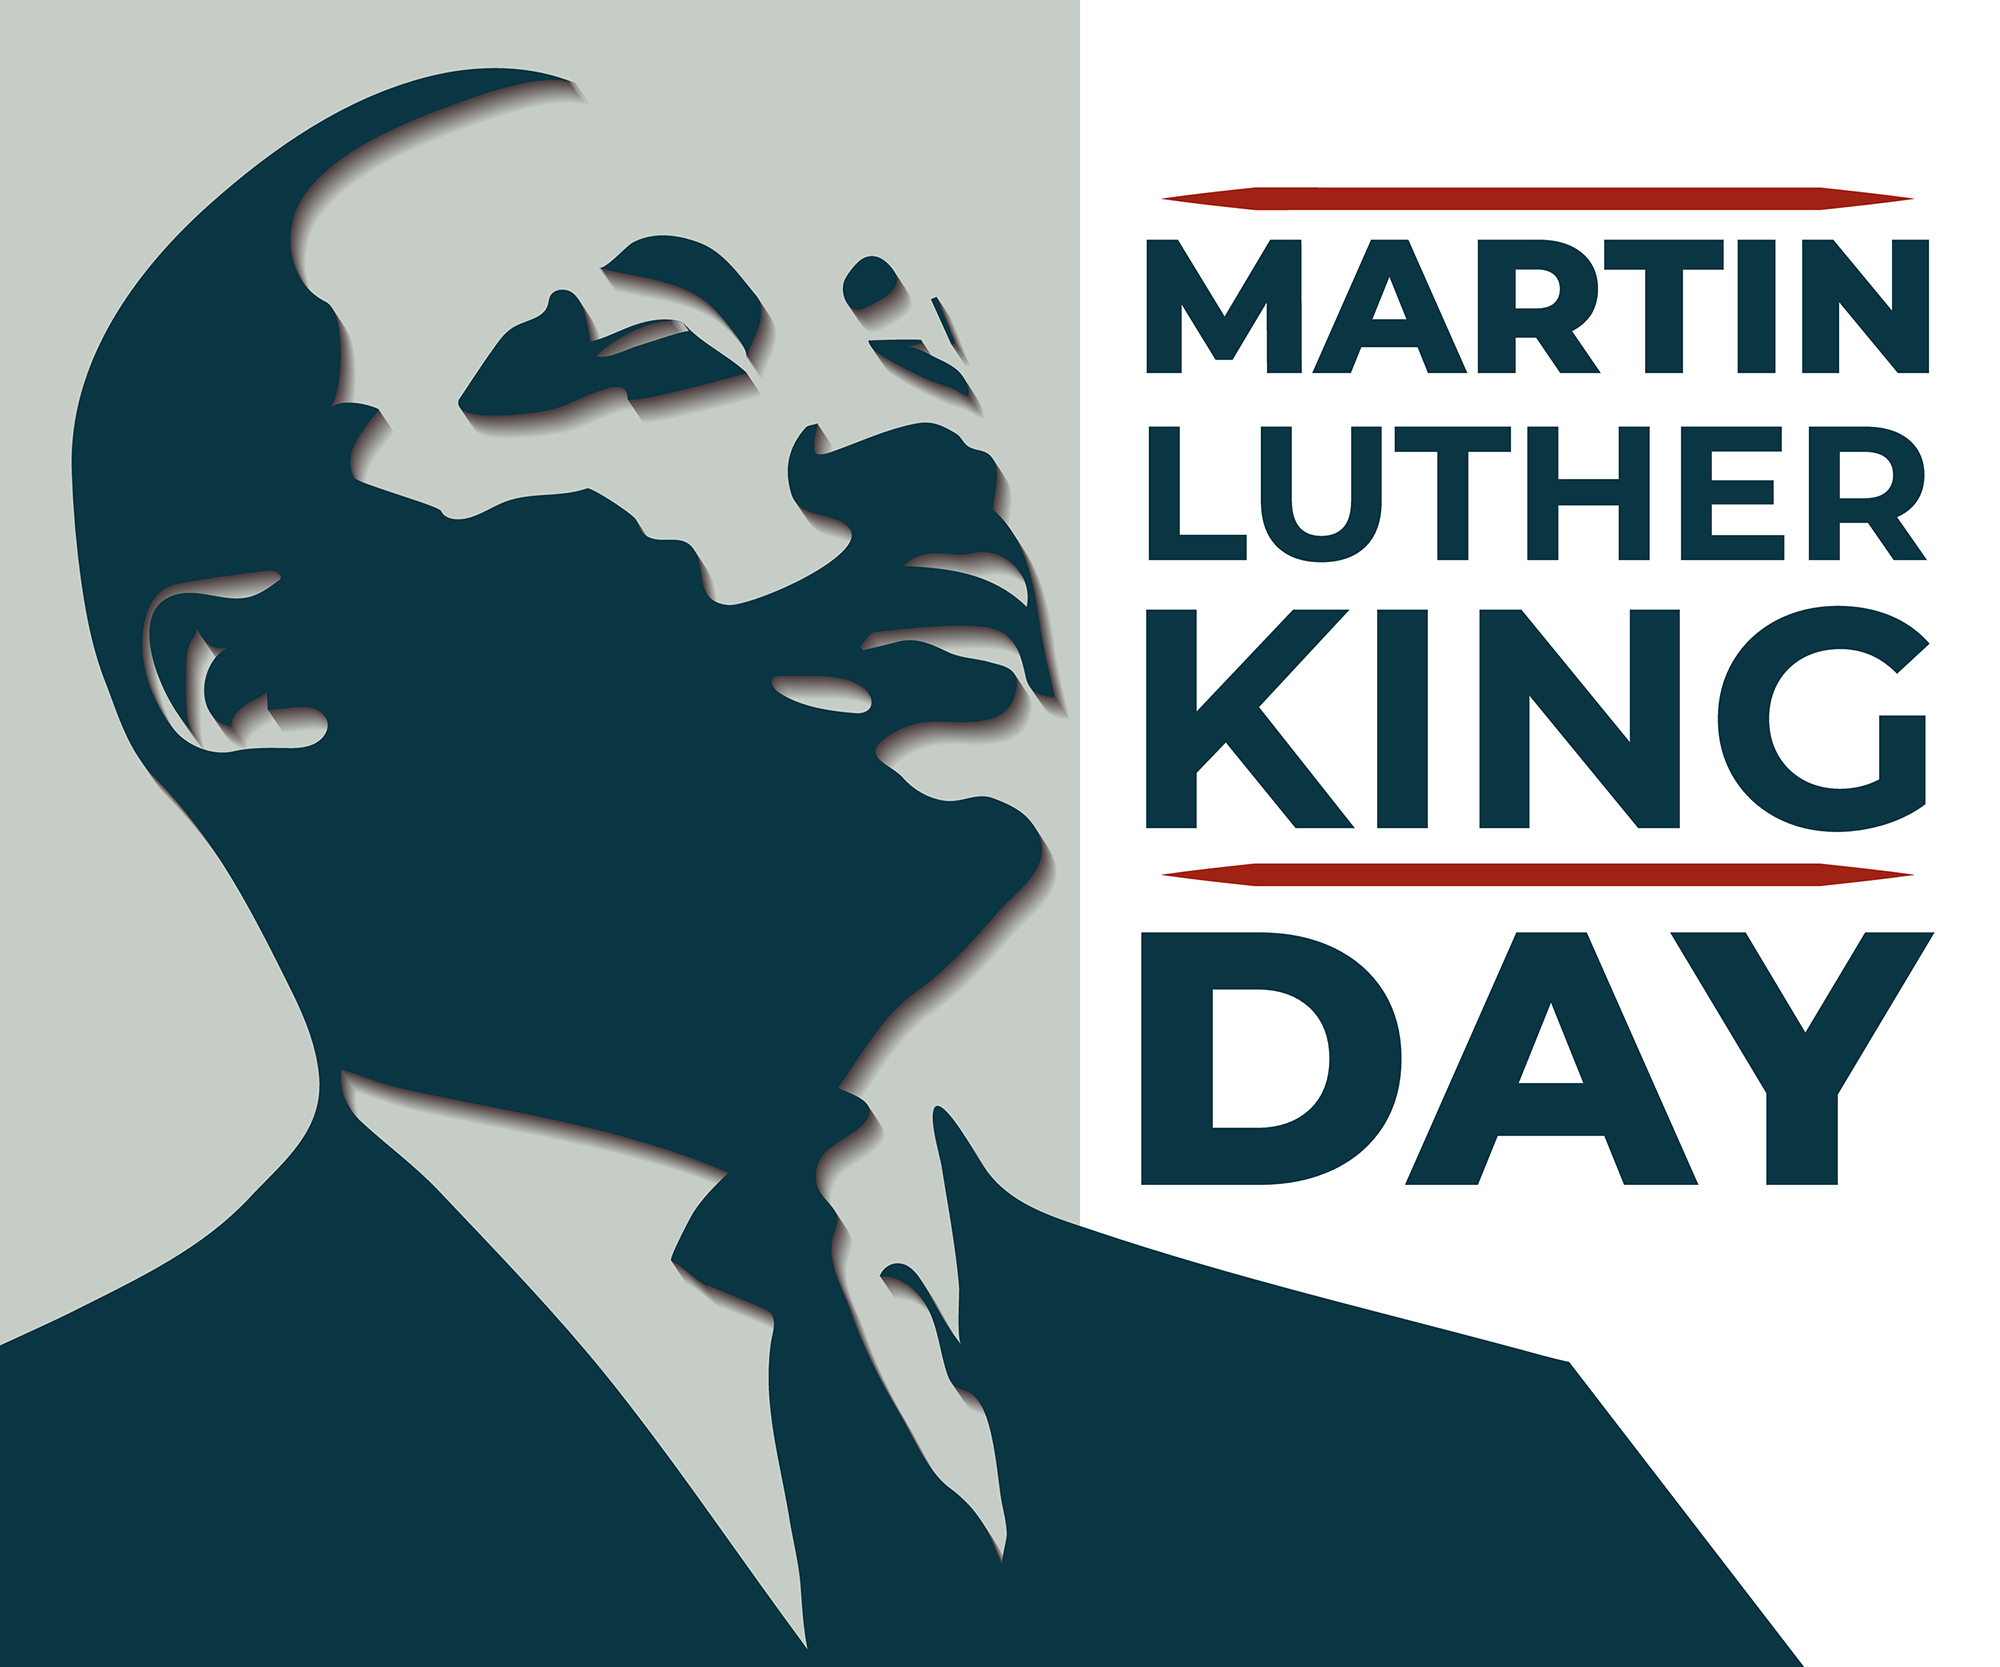 Martin Luther King Day illustration (1/2021)